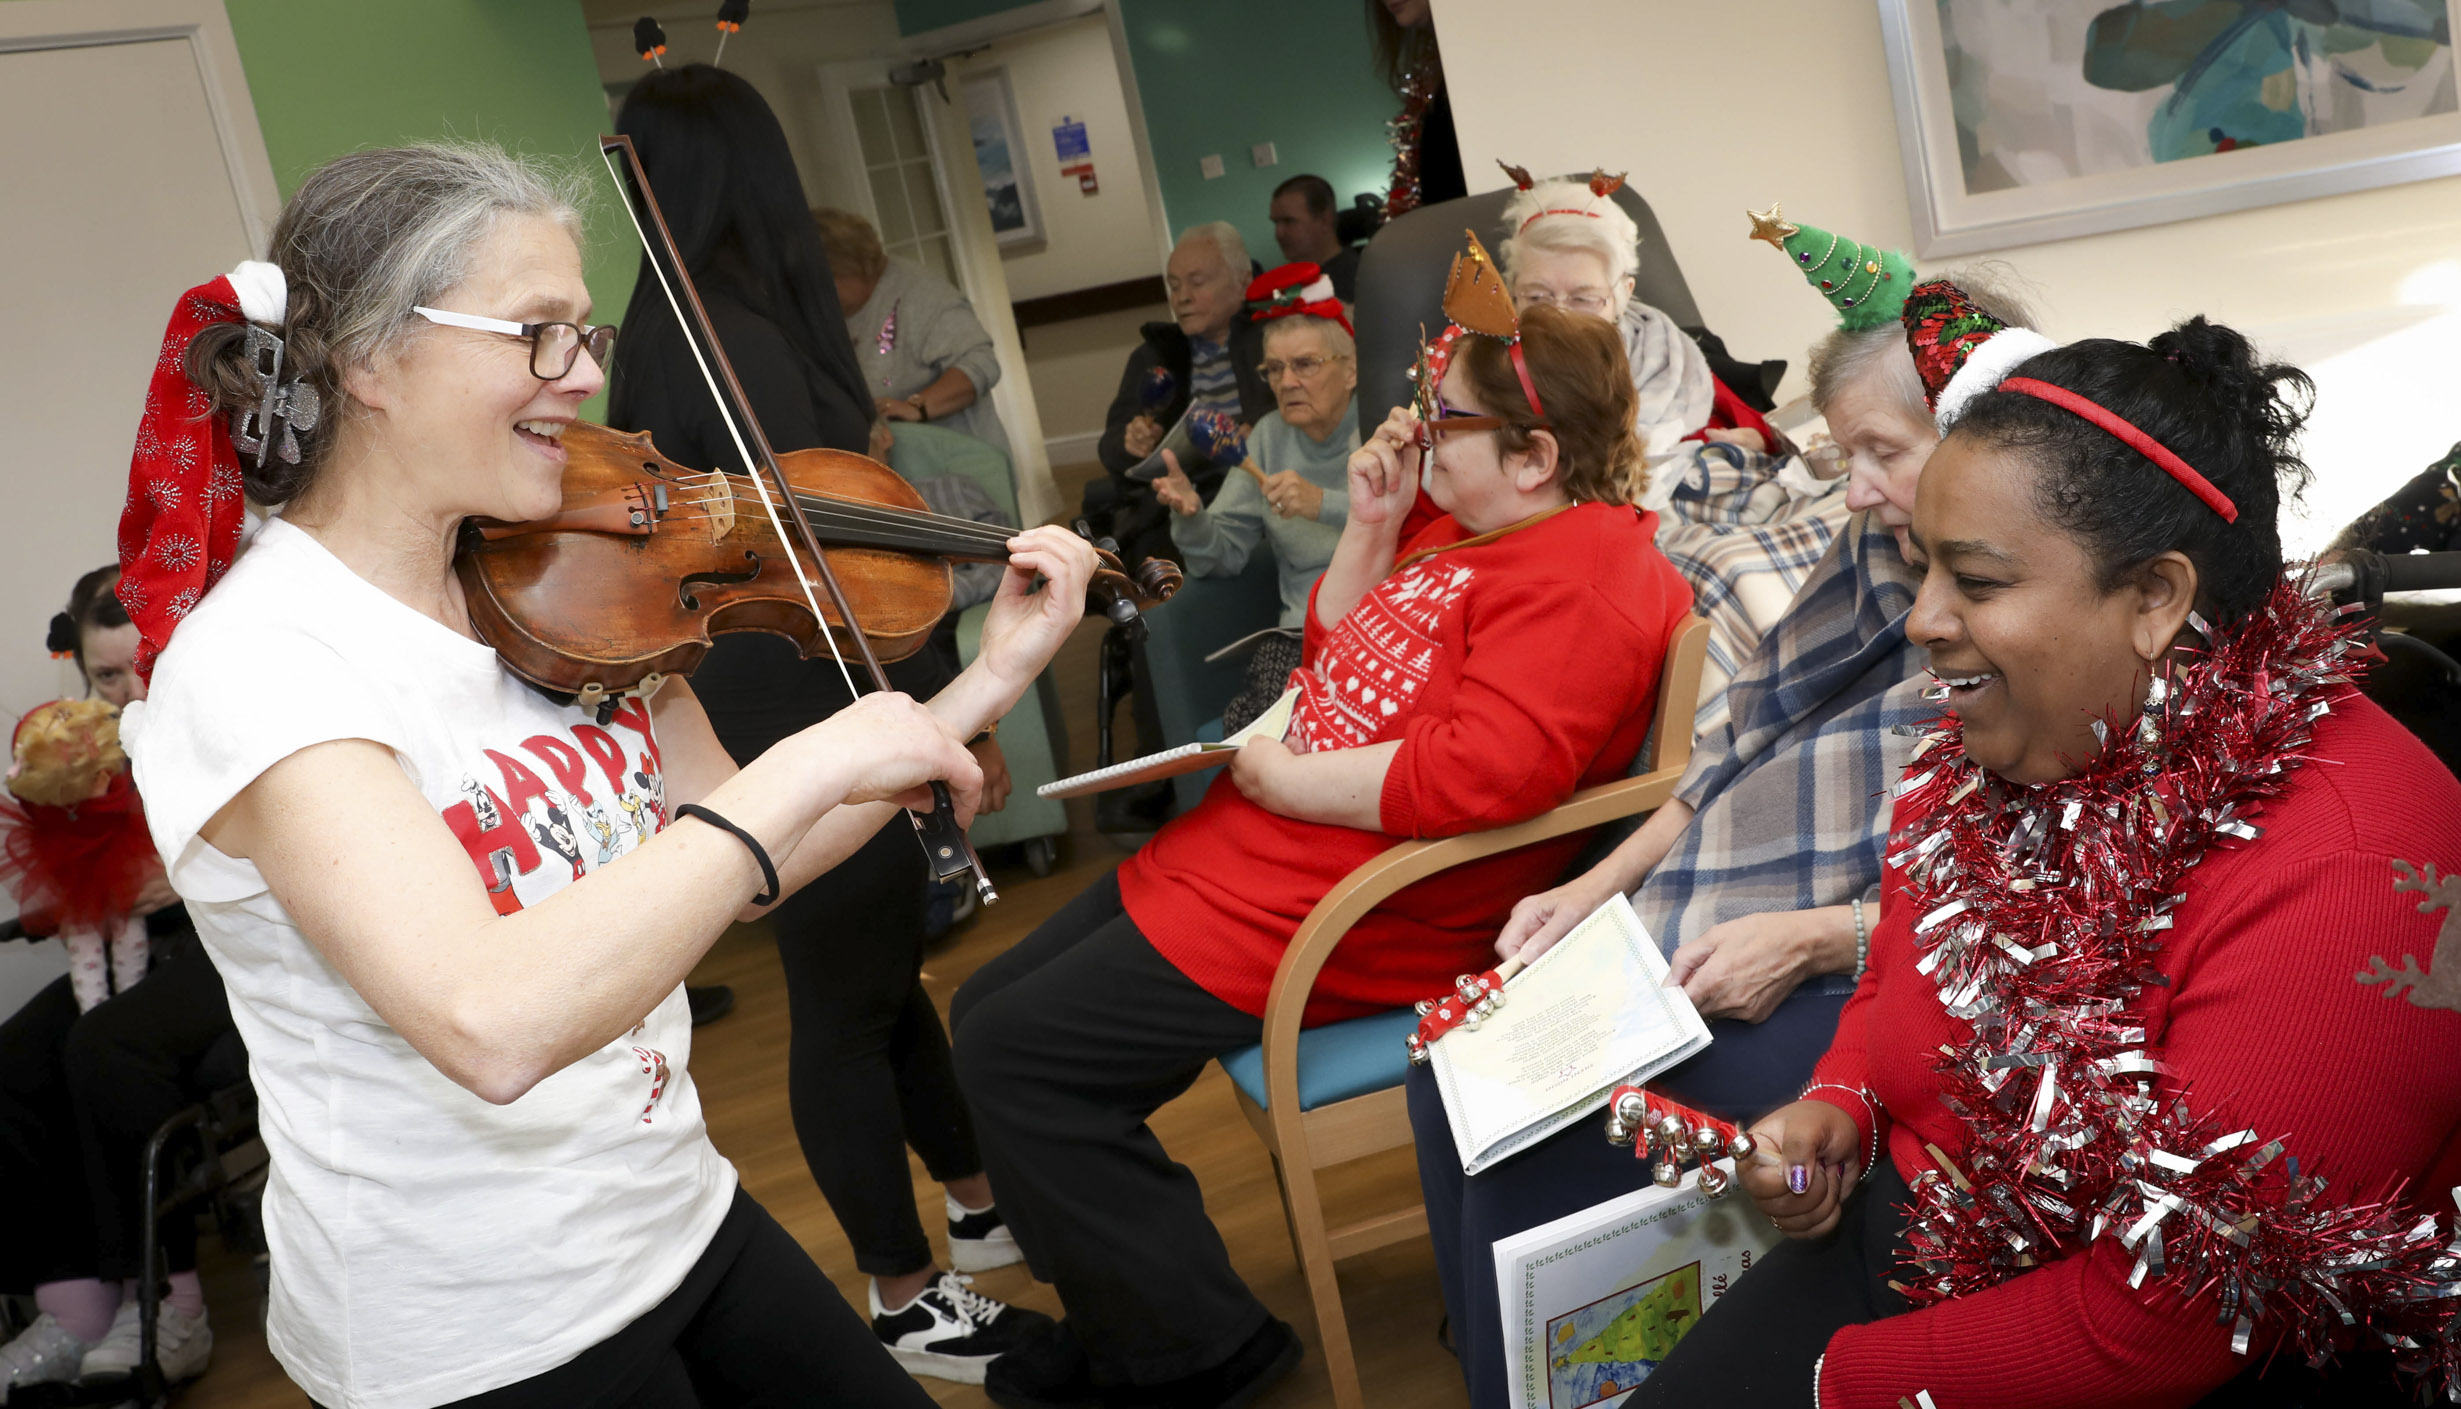 World class orchestra brings magic of Christmas to care home residents